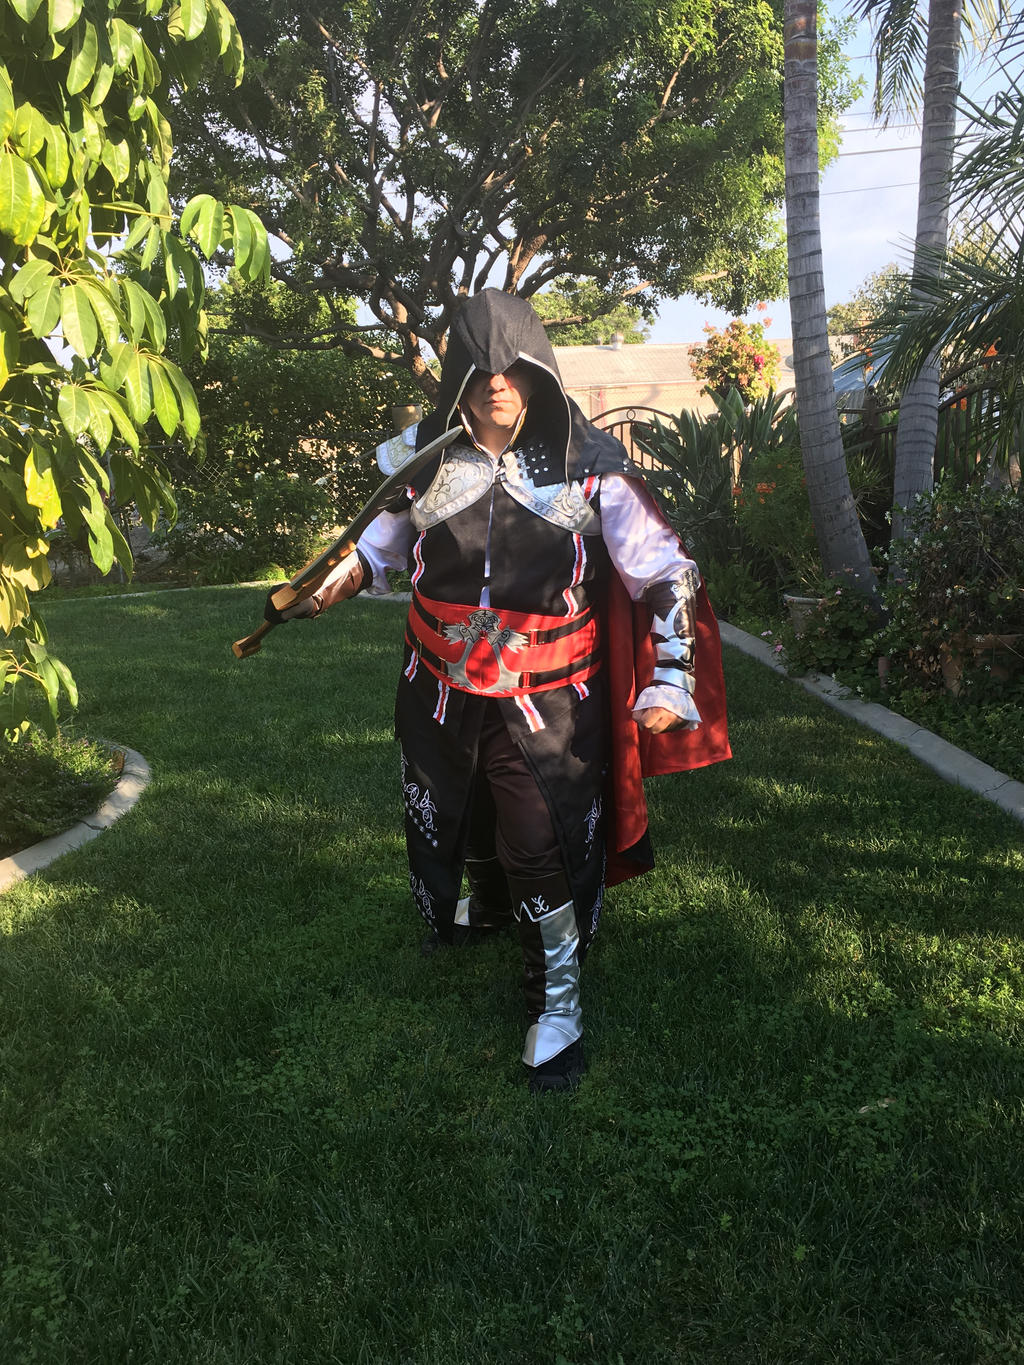 assassin's creed 2 ezio cosplay fight pose by kongo217 on ...